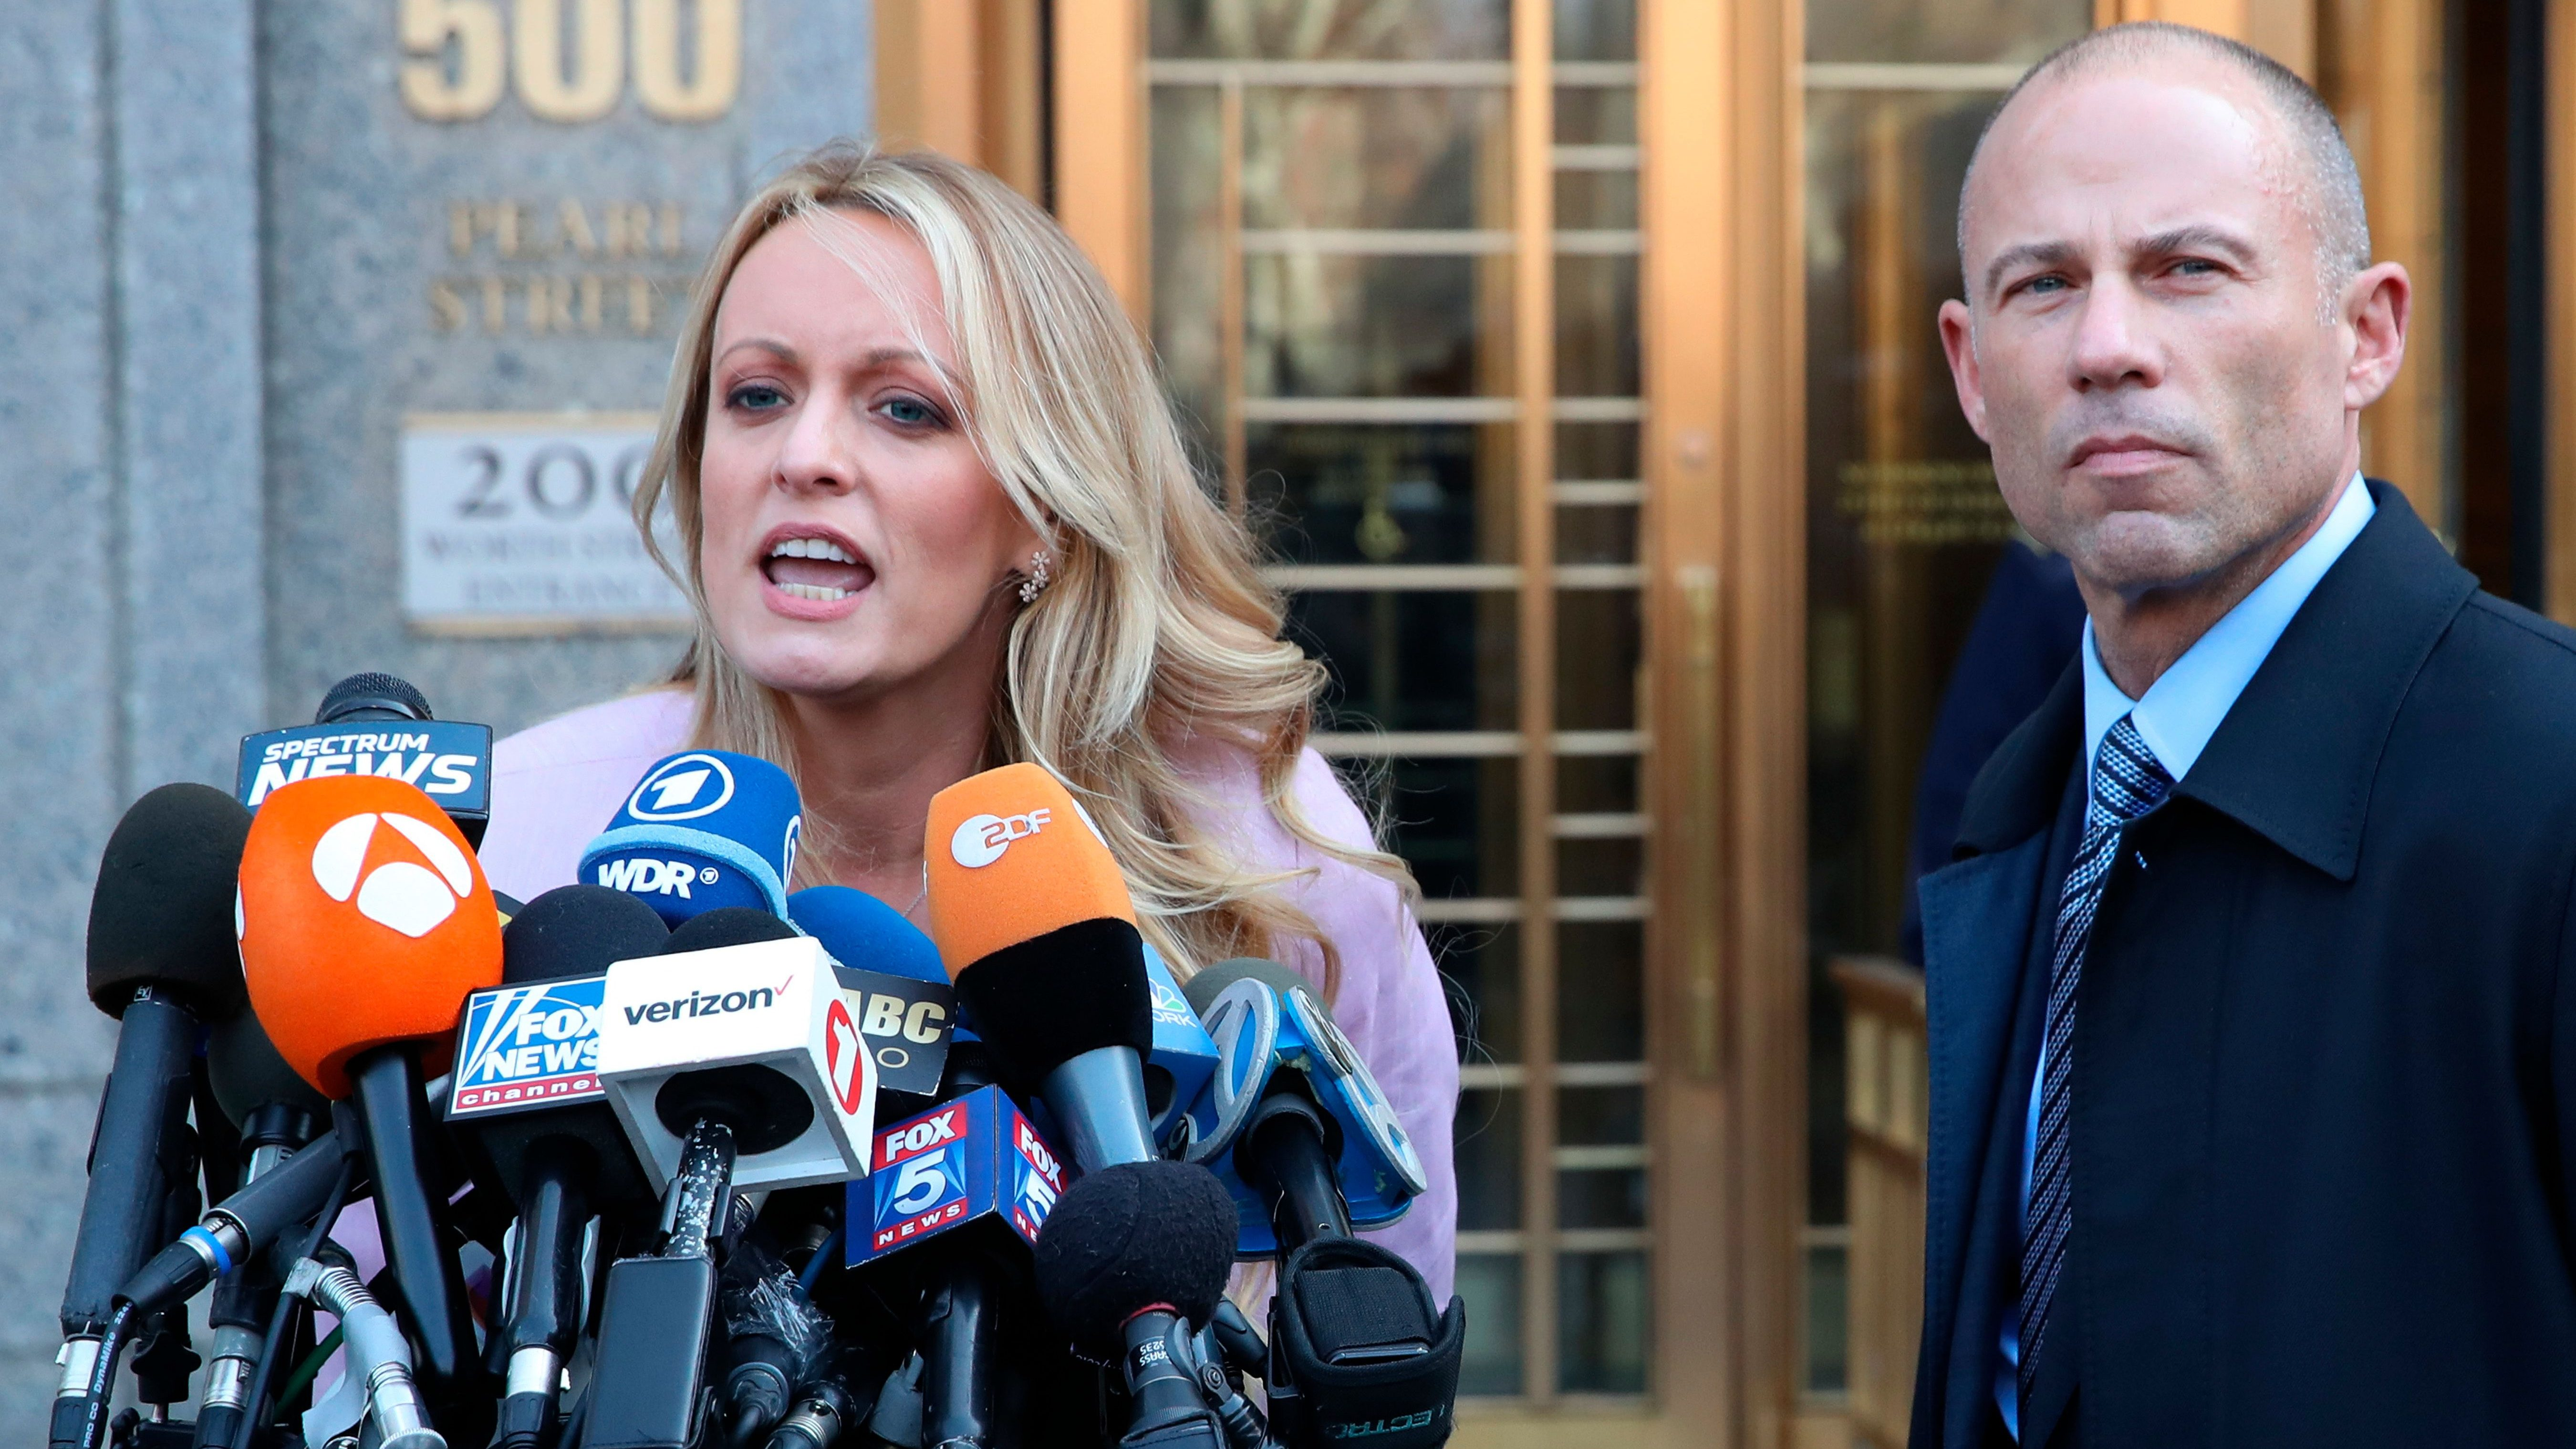 Porn actress Stormy Daniels, accompanied by her attorney, Michael Avenatti, right, talks to the media as she leaves federal court, Monday, April 16, 2018 in New York. A U.S. judge listened to more arguments about President Donald Trump's extraordinary request that he be allowed to review records seized from his lawyer, Michael Cohen, office as part of a criminal investigation before they are examined by prosecutors. (AP Photo/Mary Altaffer)